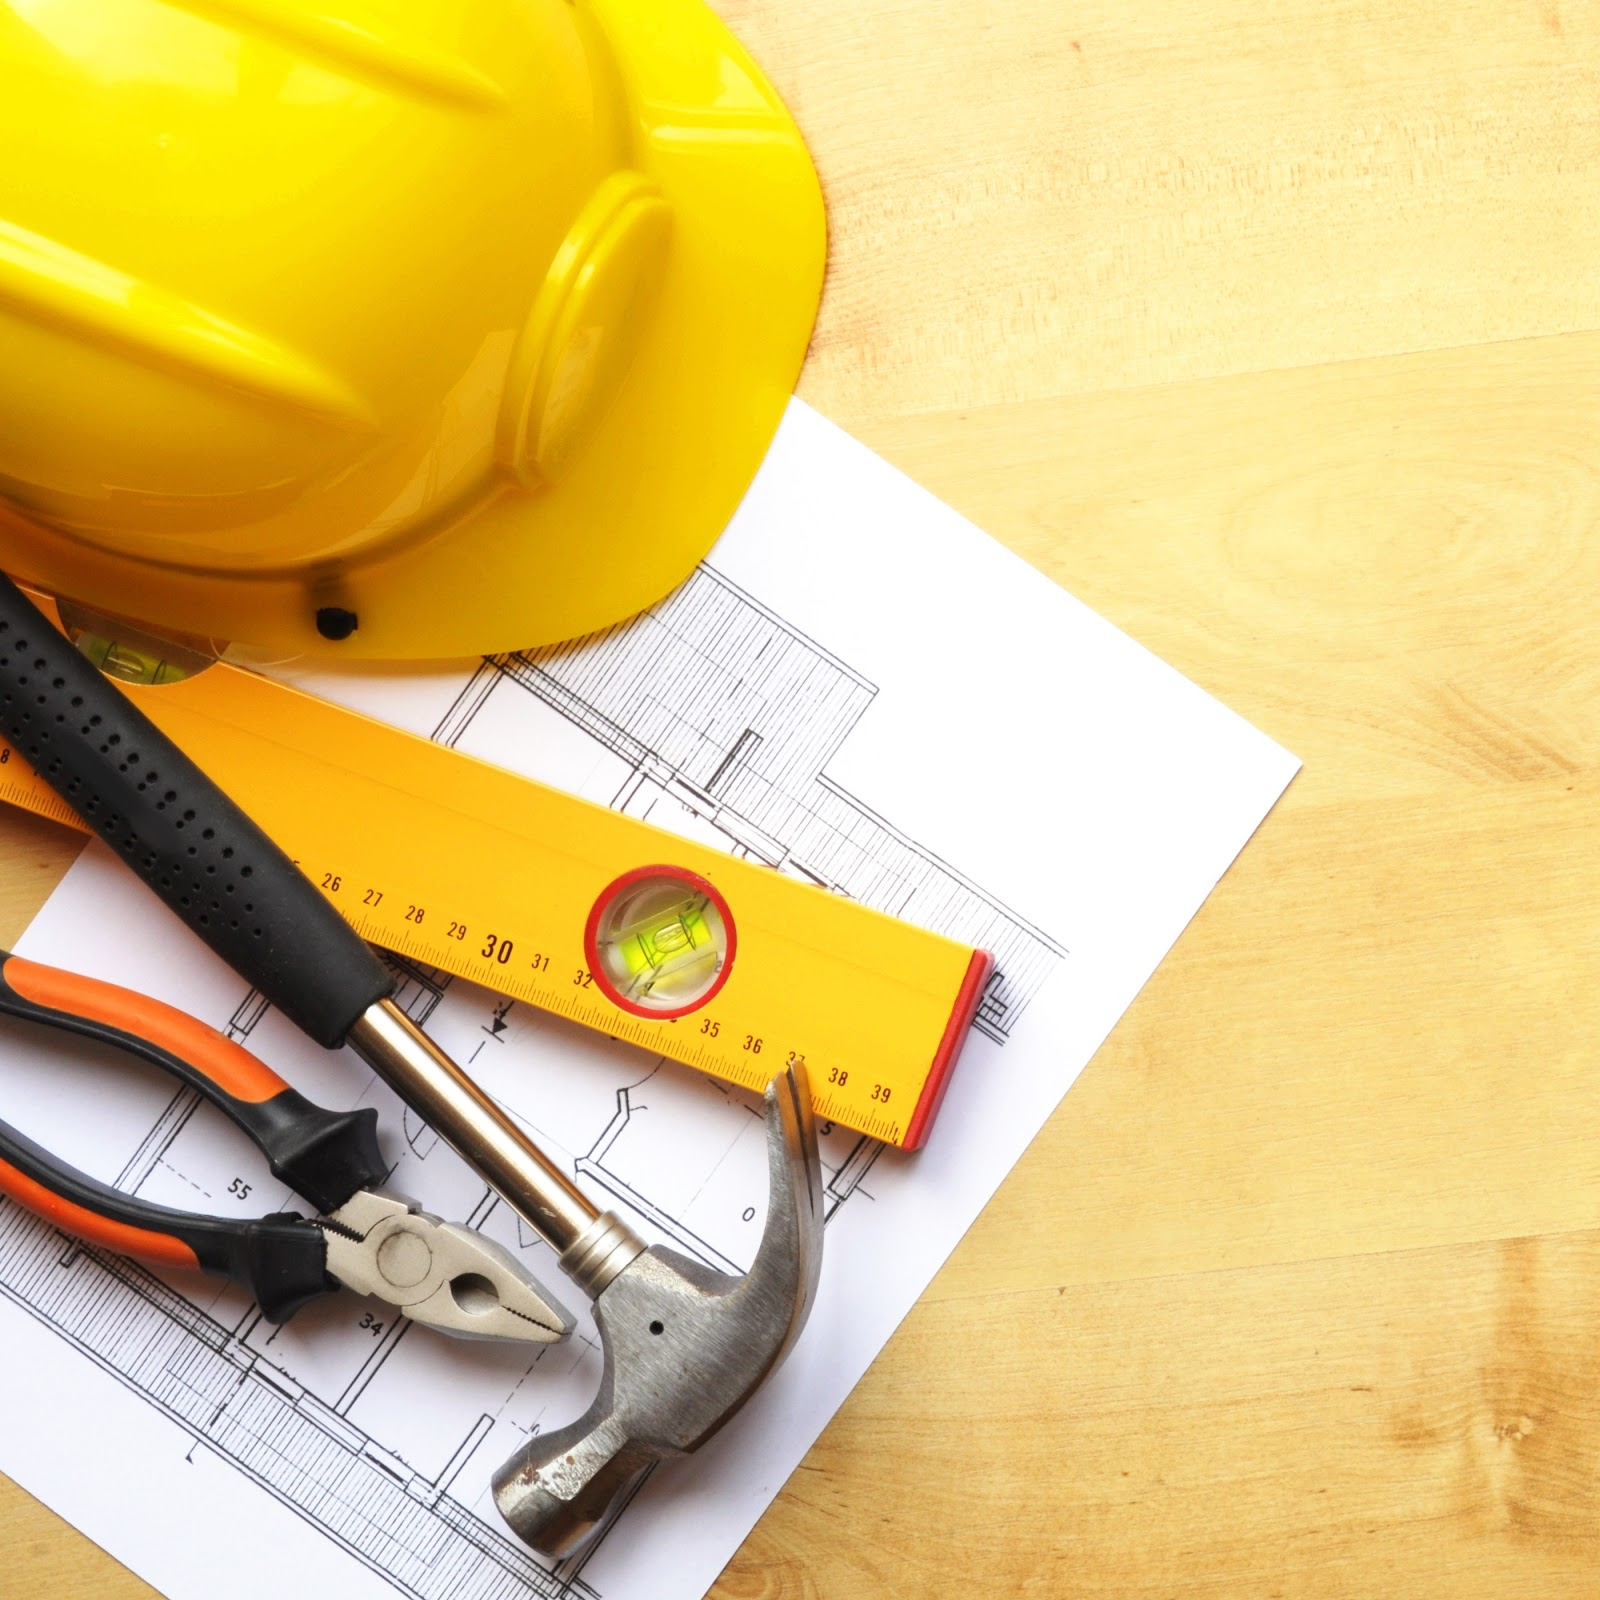 5 top renovation woes that plague homeowners